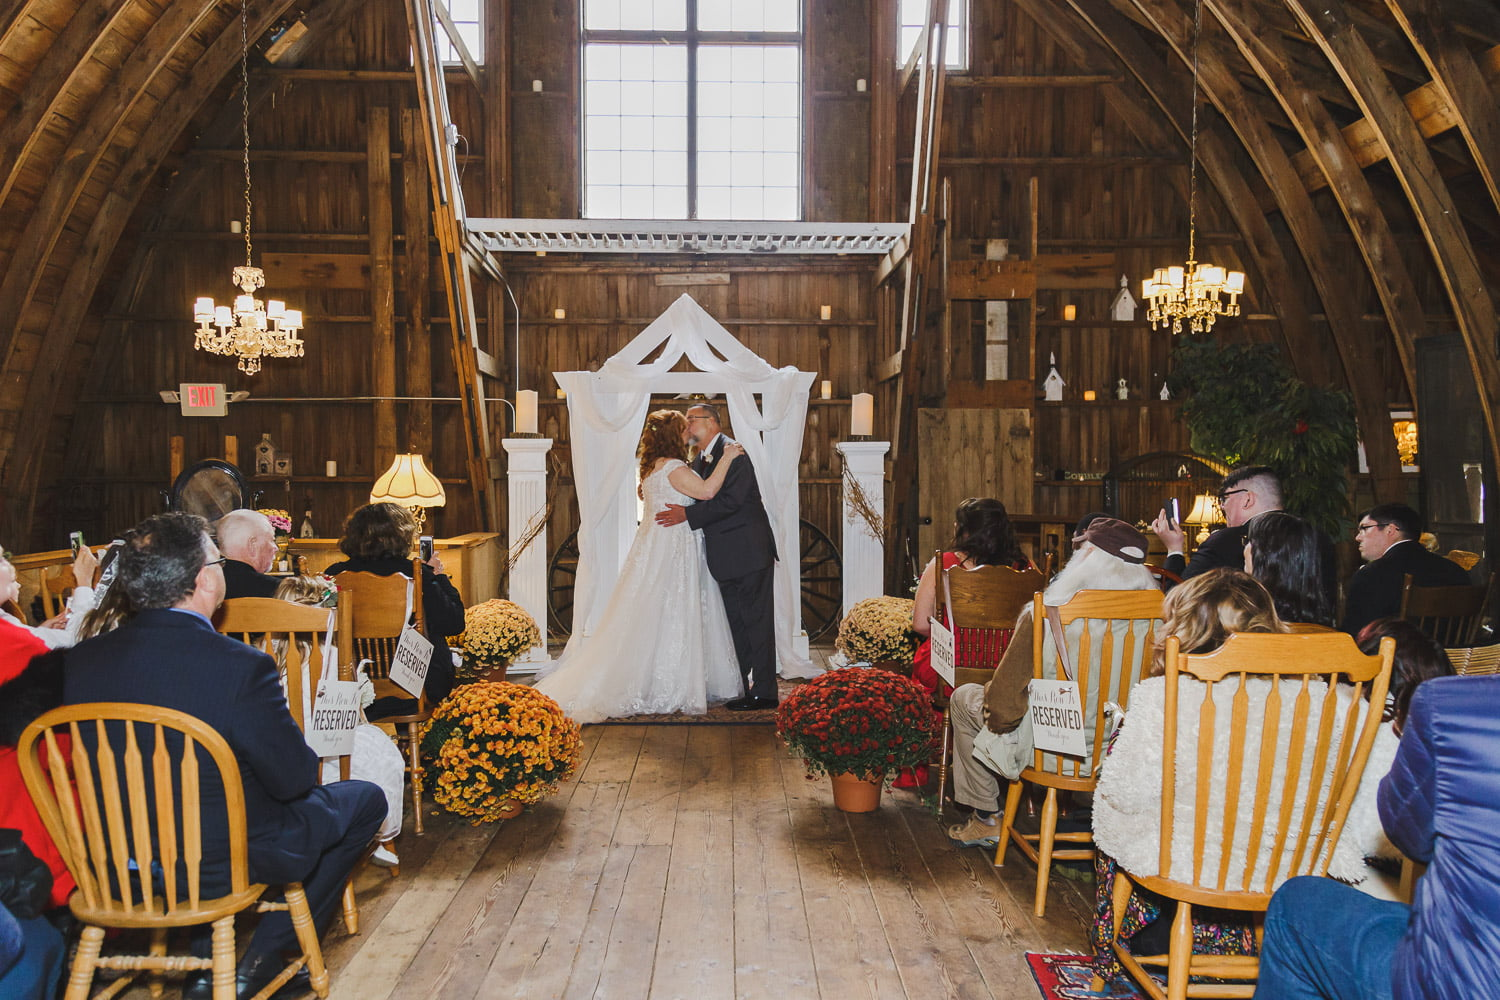 wedding ceremony at Rubies and Rust Barn in Belle Plaine